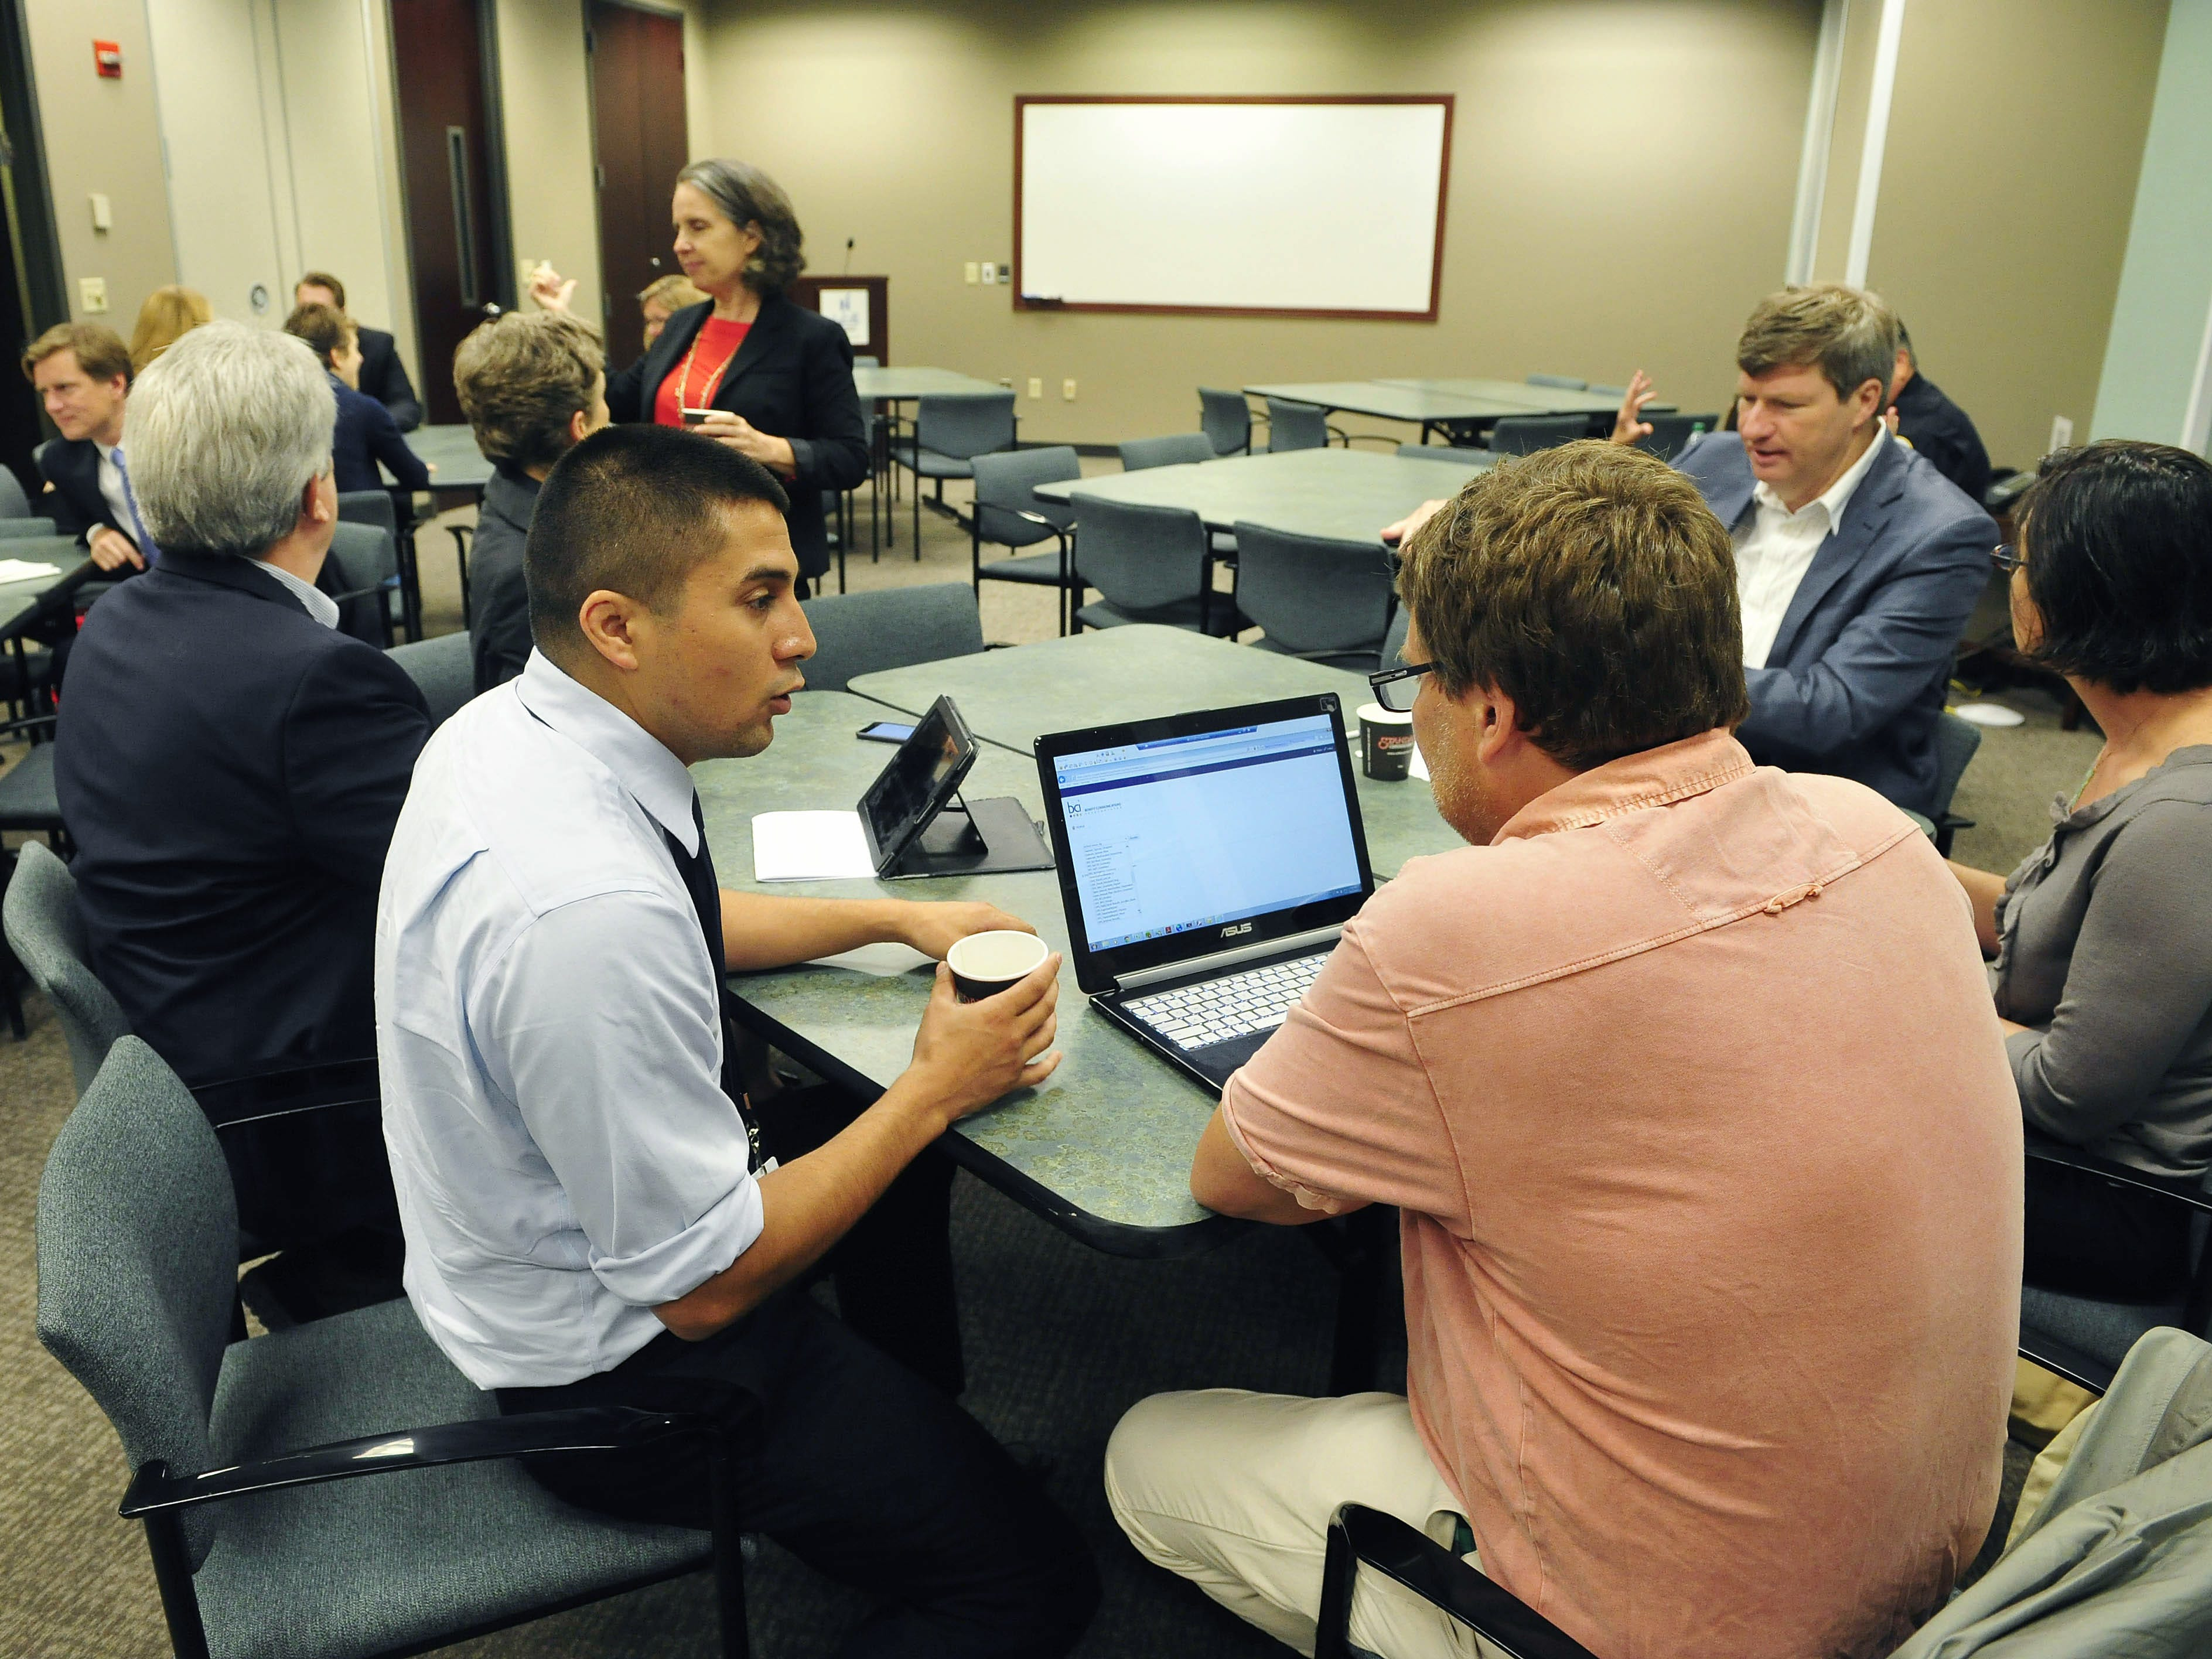 Tennessean reporter Jason Gonzales, front left, talks with TC Weber during a Project RESET meeting hosted by The Tennessean at the Nashville Chamber in downtown Nashville on May 21, 2015.